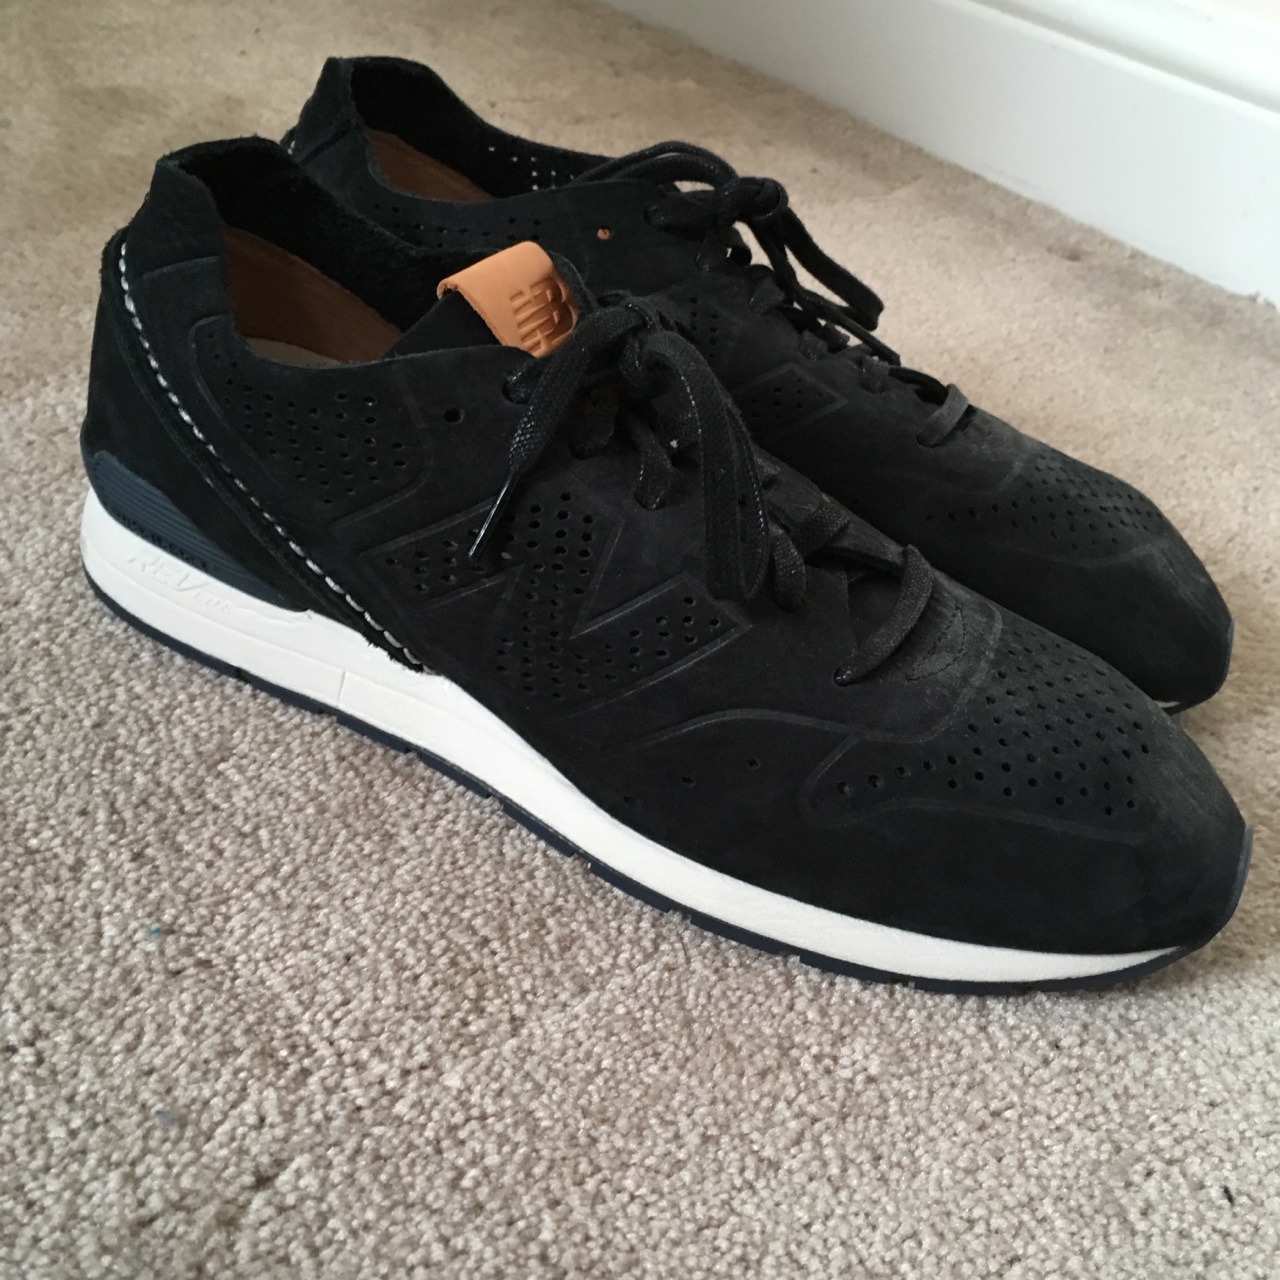 official photos f0ad1 f706f New Balance 996 Re-engineered. Great Condition. Worn ...